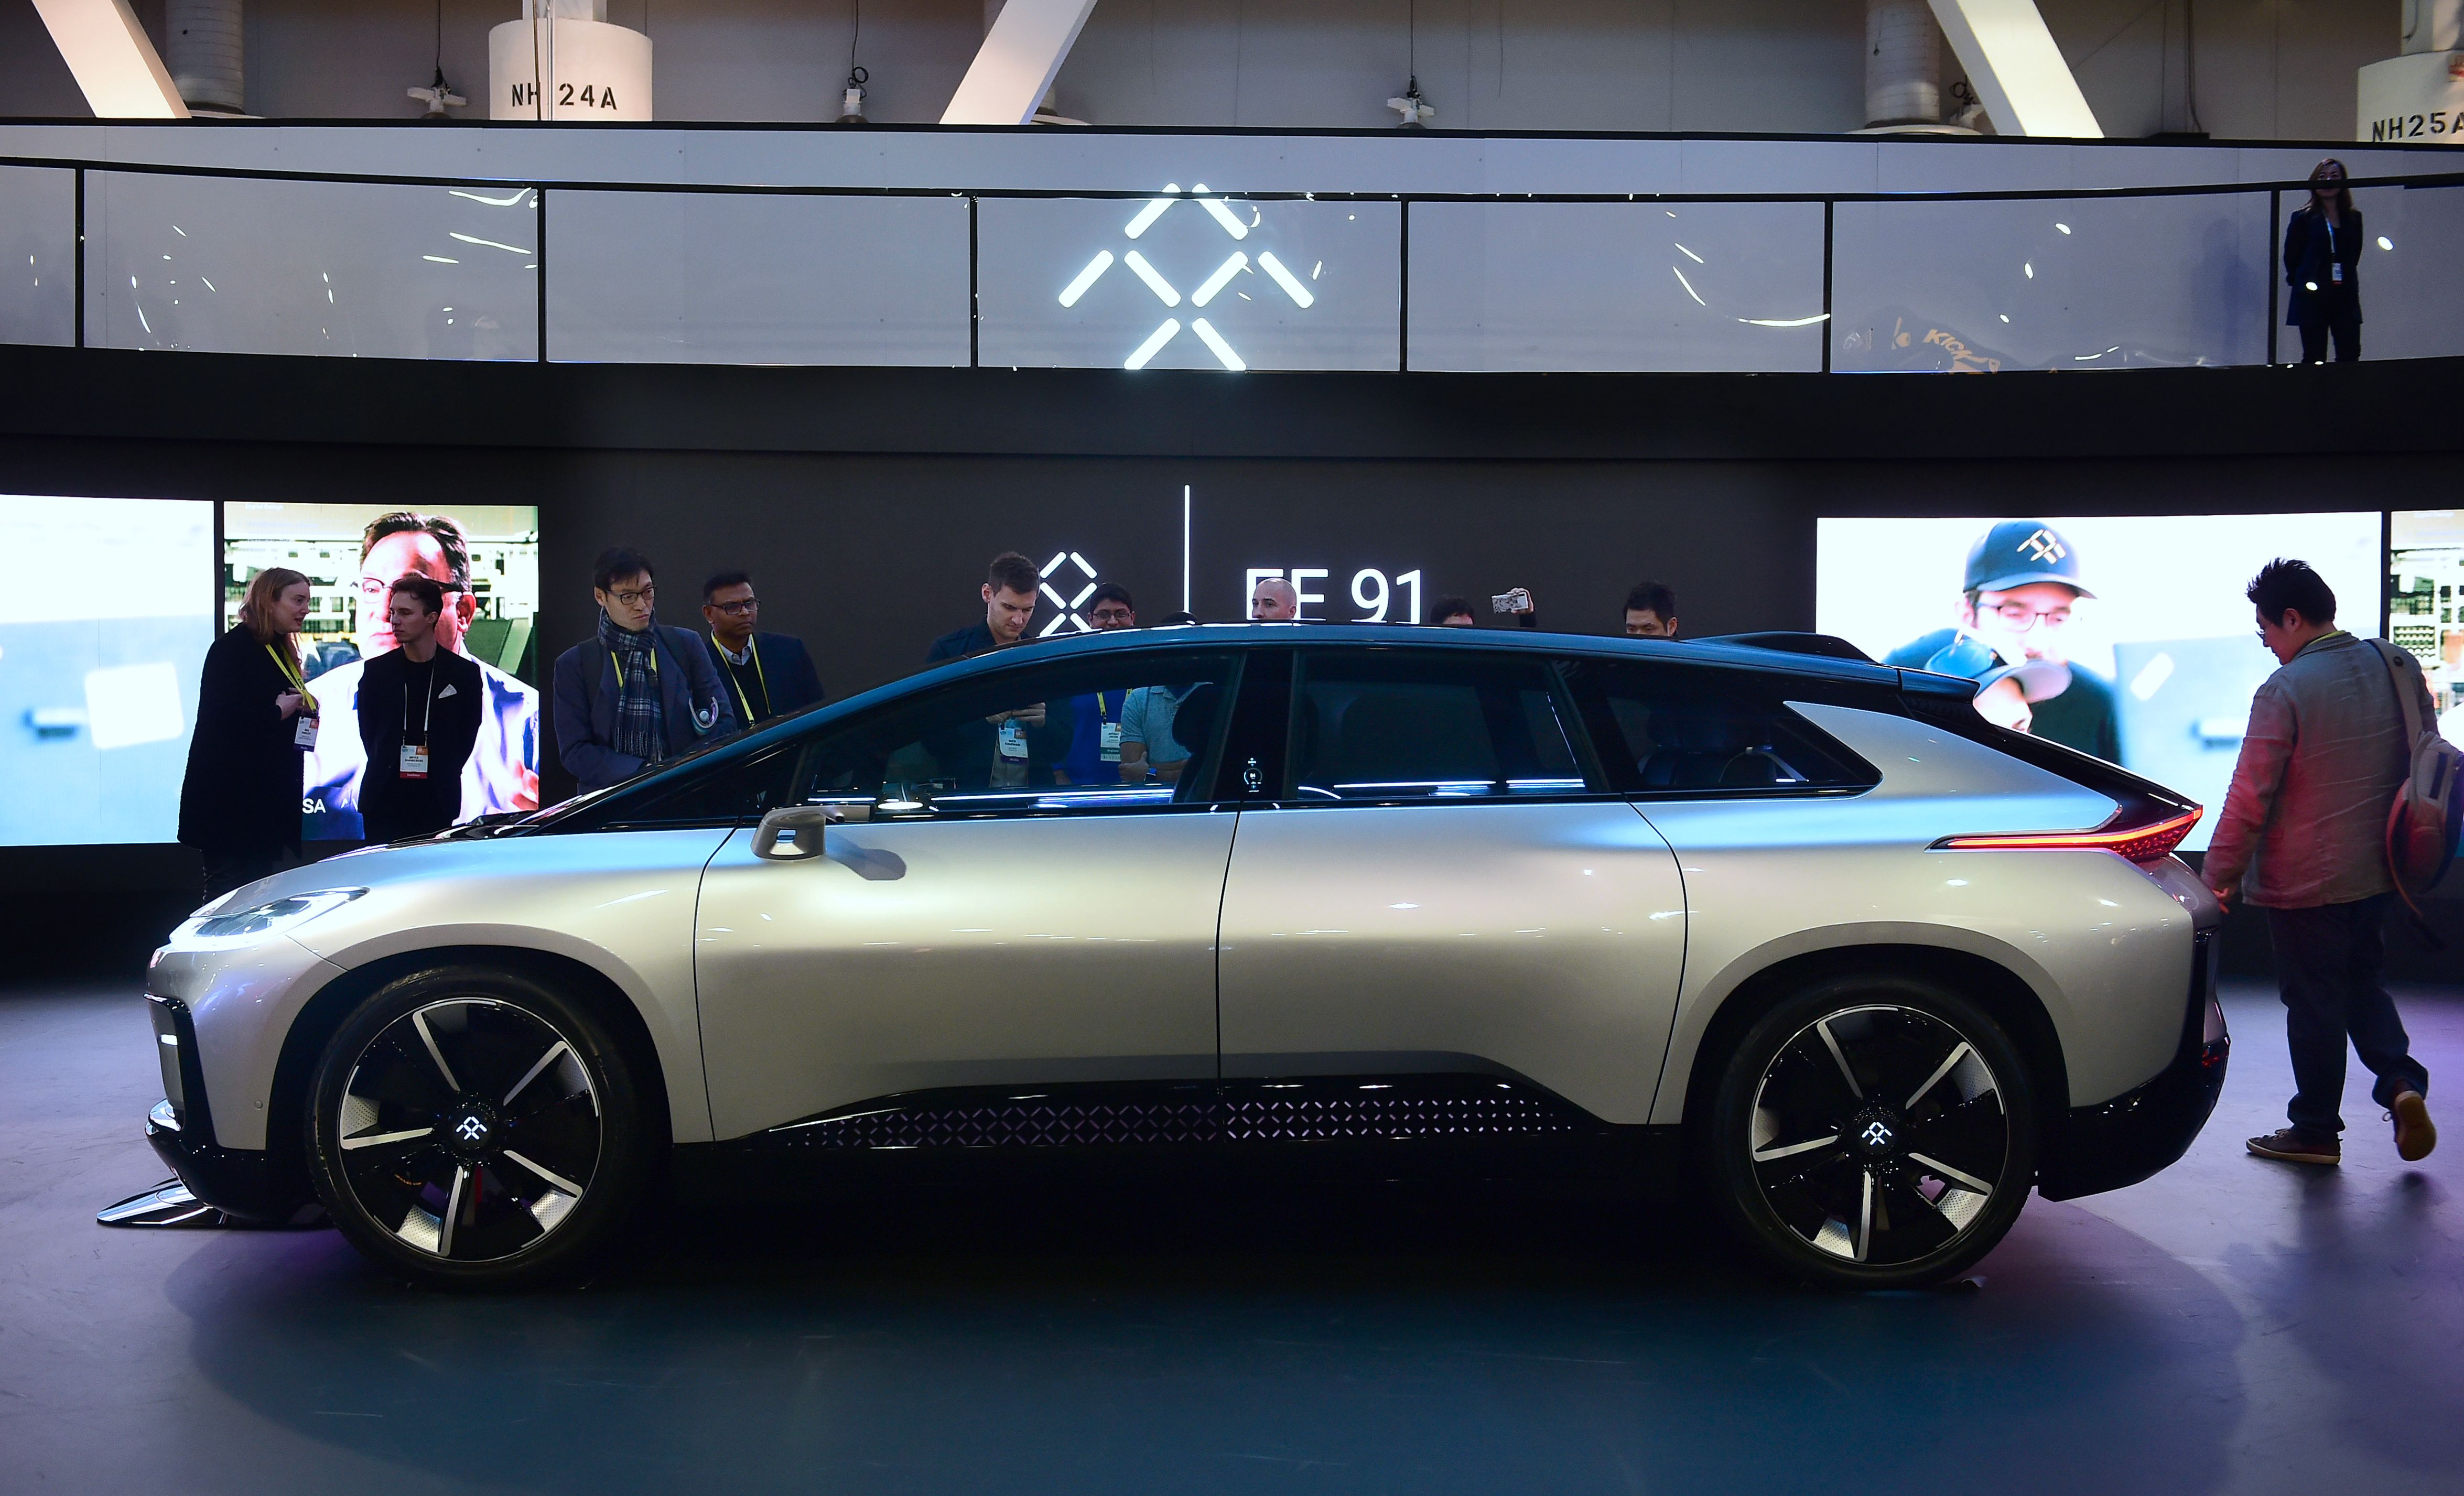 Beleaguered Electric Vehicle Firm Faraday Future Gets 2b Investment Boost Techcrunch